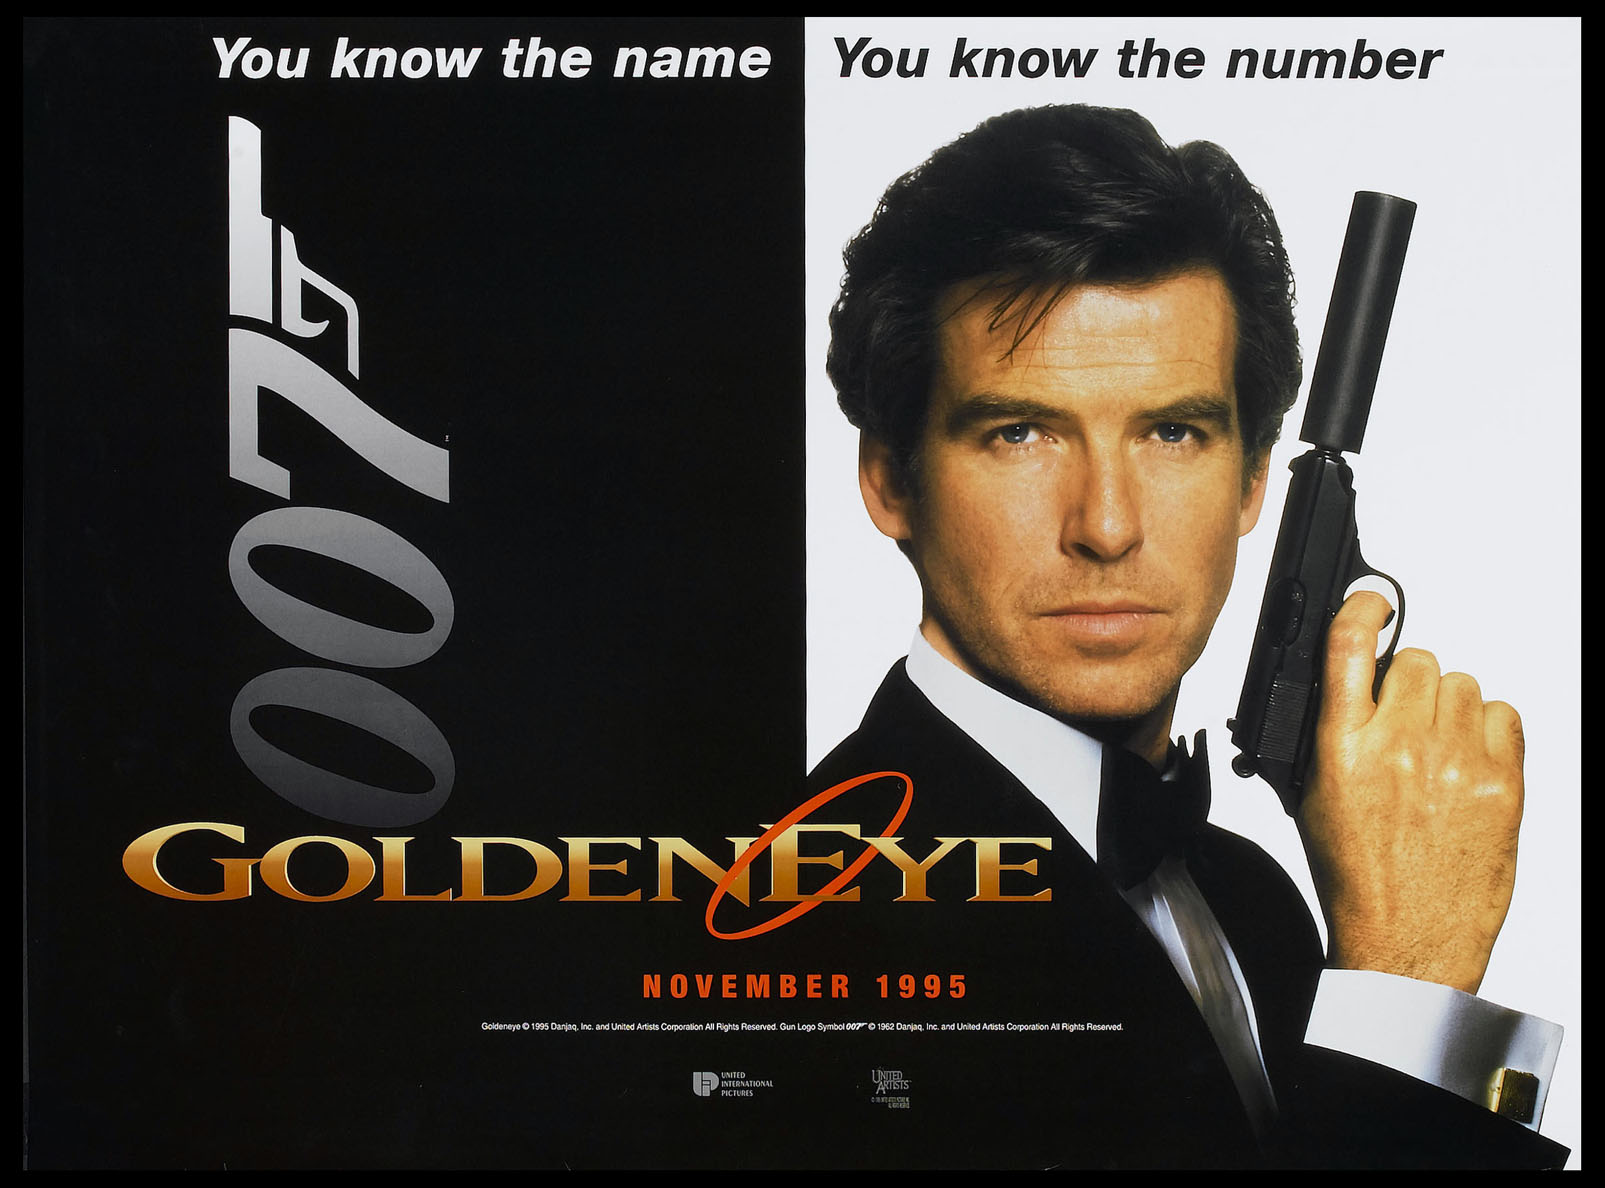 GOLDENEYE (James Bond) @ FilmPosters.com